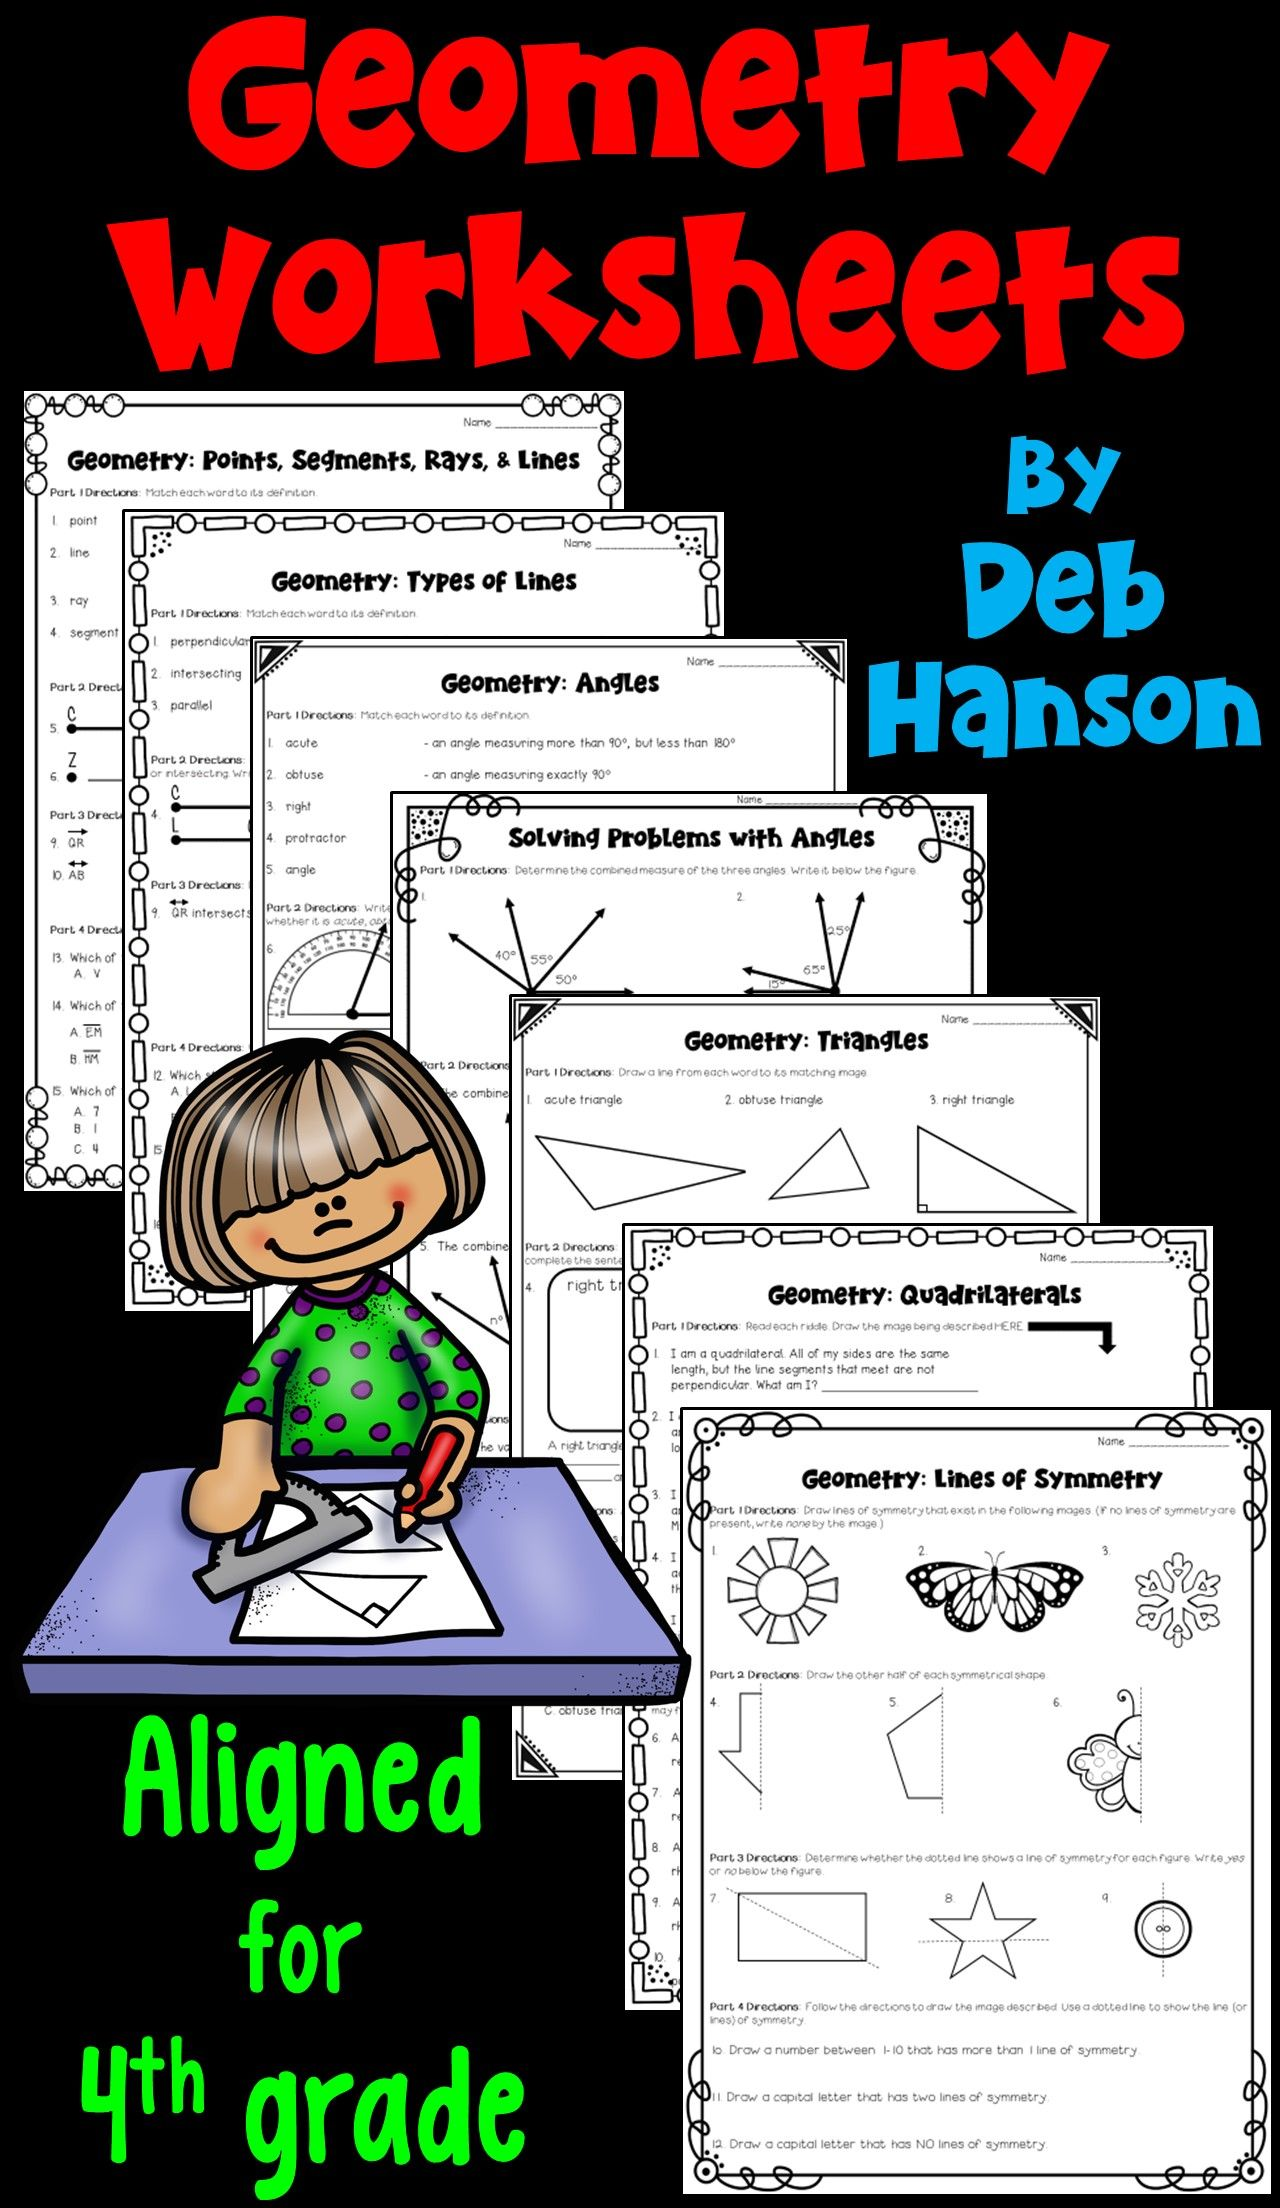 small resolution of Geometry Worksheets for 4th grade! This set of 7 worksheets focus on lines